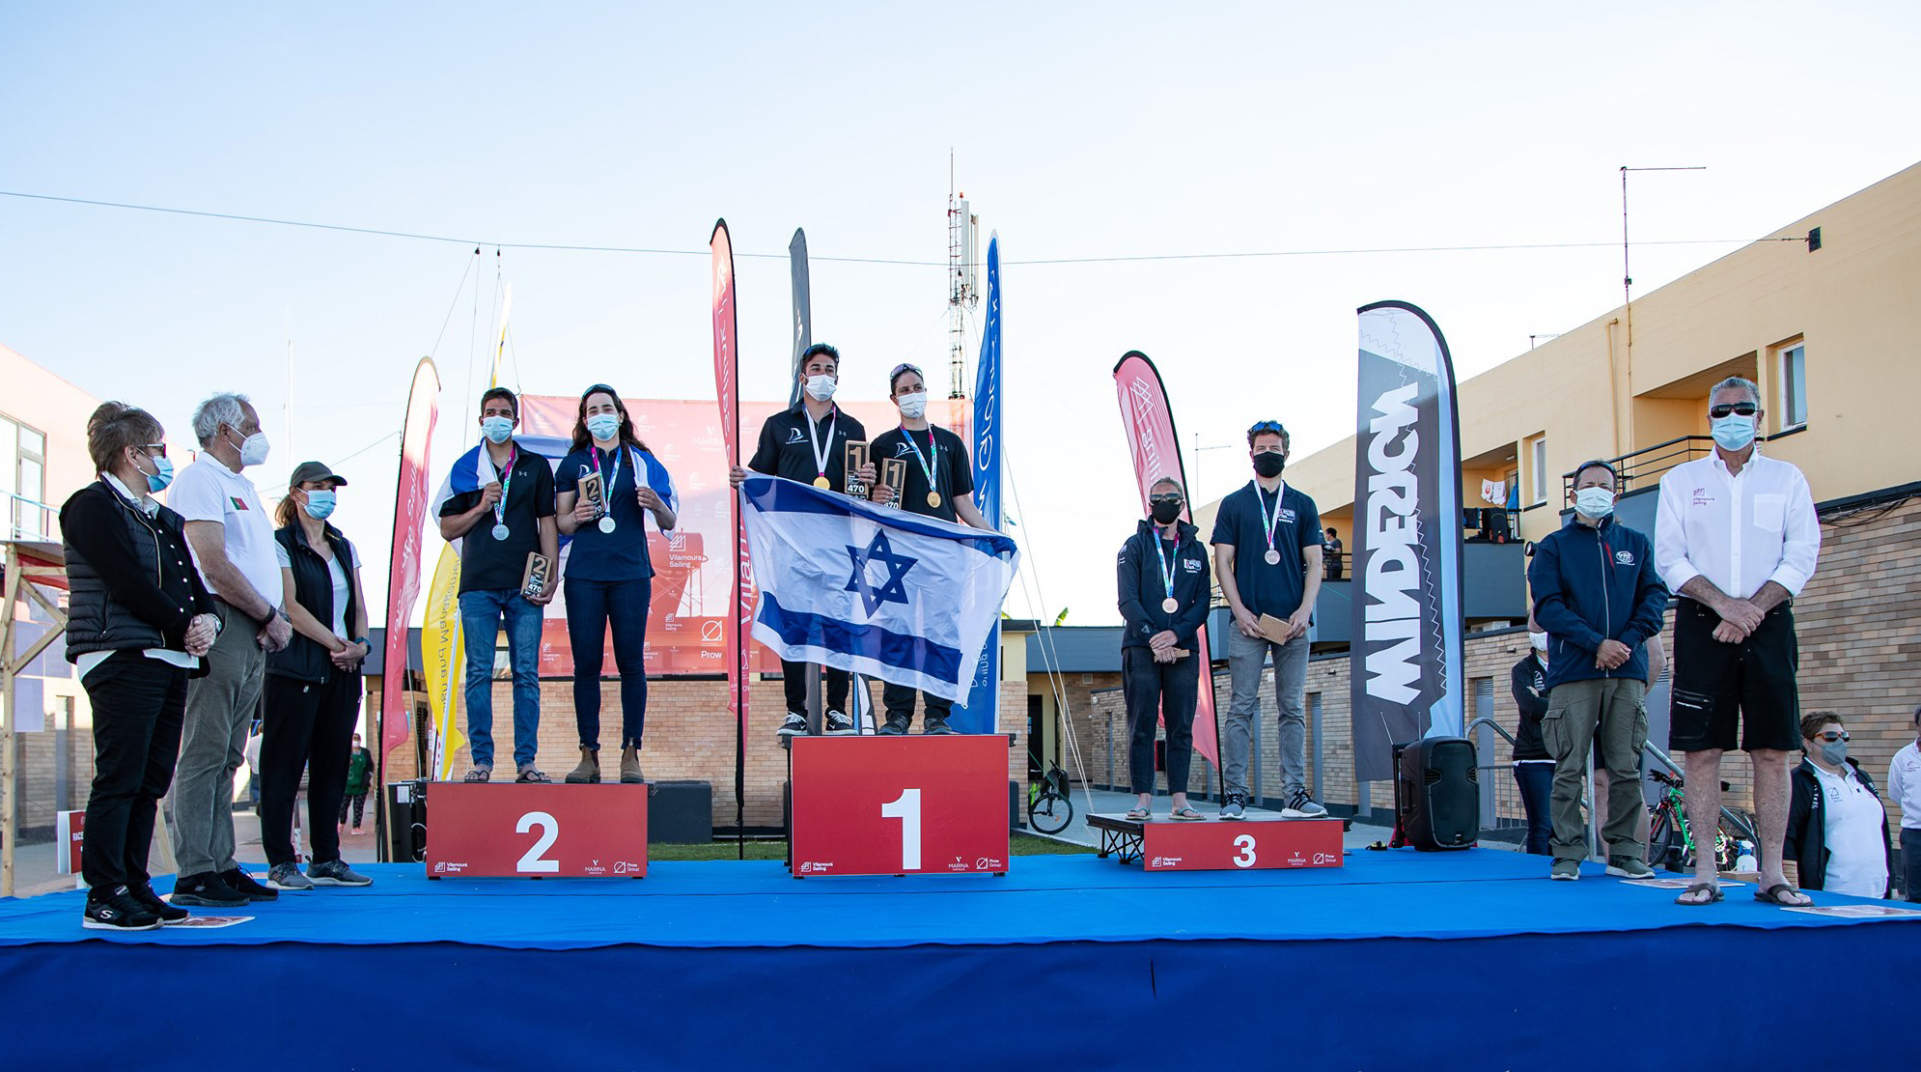 Amy Seabright and James Taylor on the 2021 470 World Championship podium.